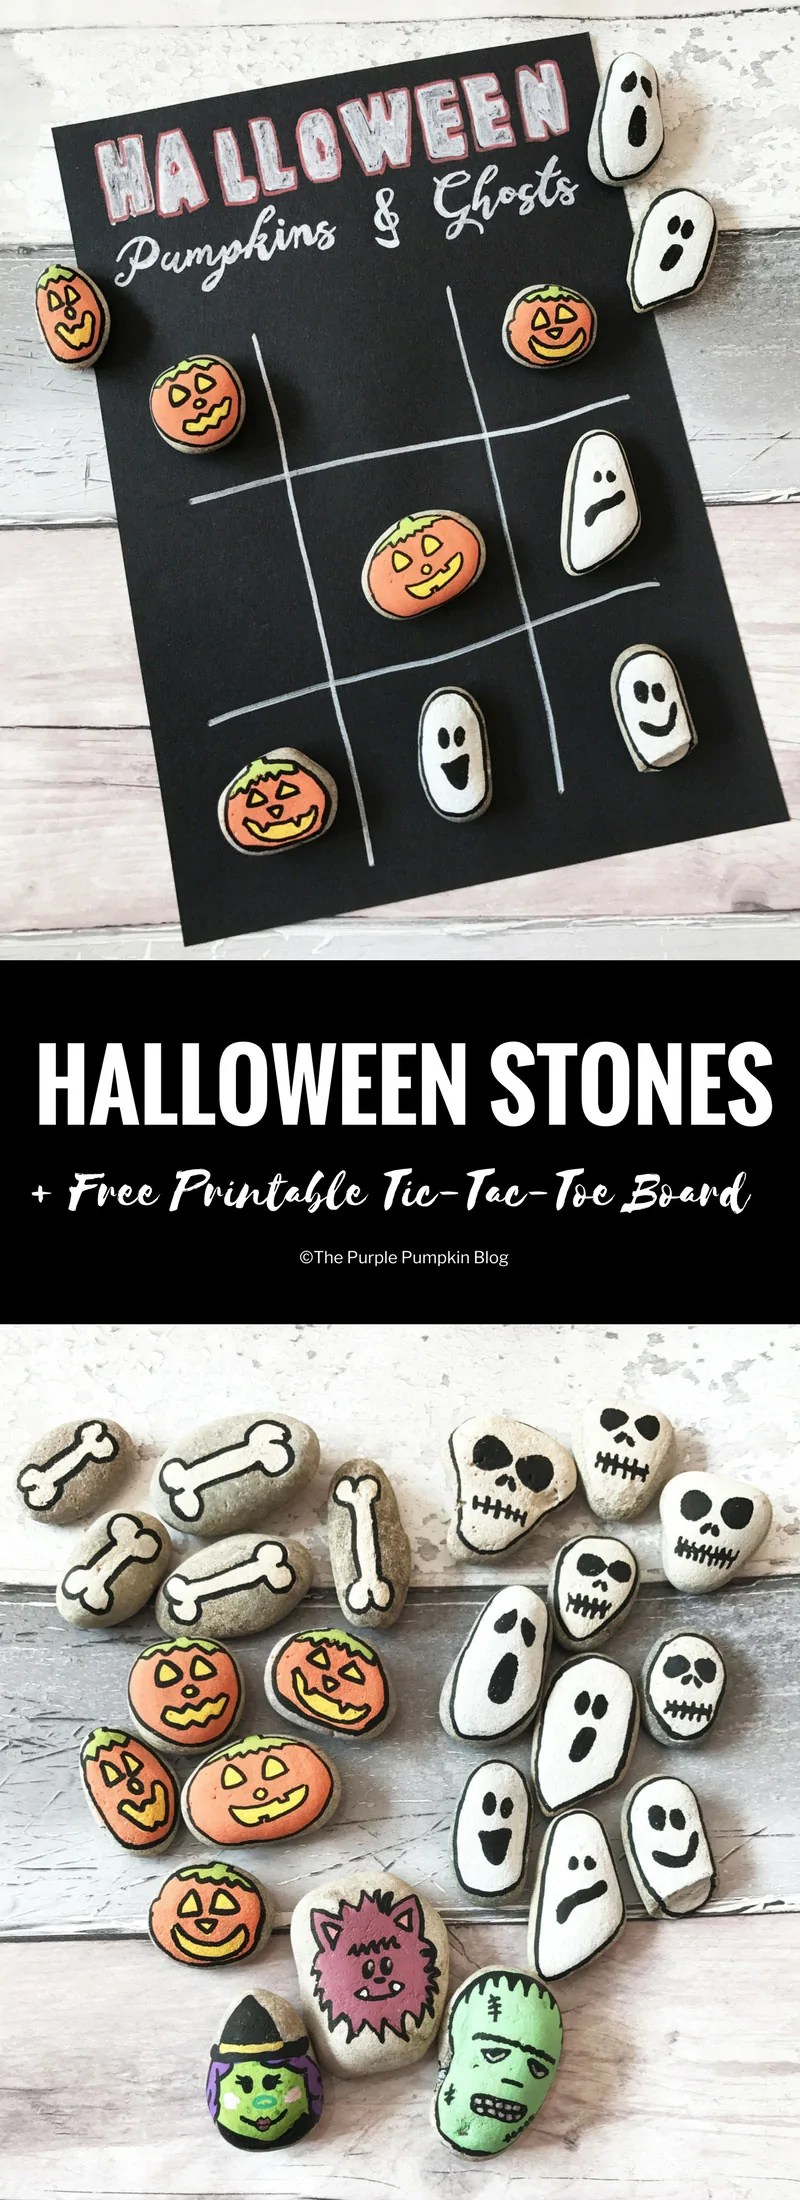 graphic relating to Free Printable Tic Tac Toe Board known as Halloween Stones: Tic-Tac-Toe + Free of charge Printable